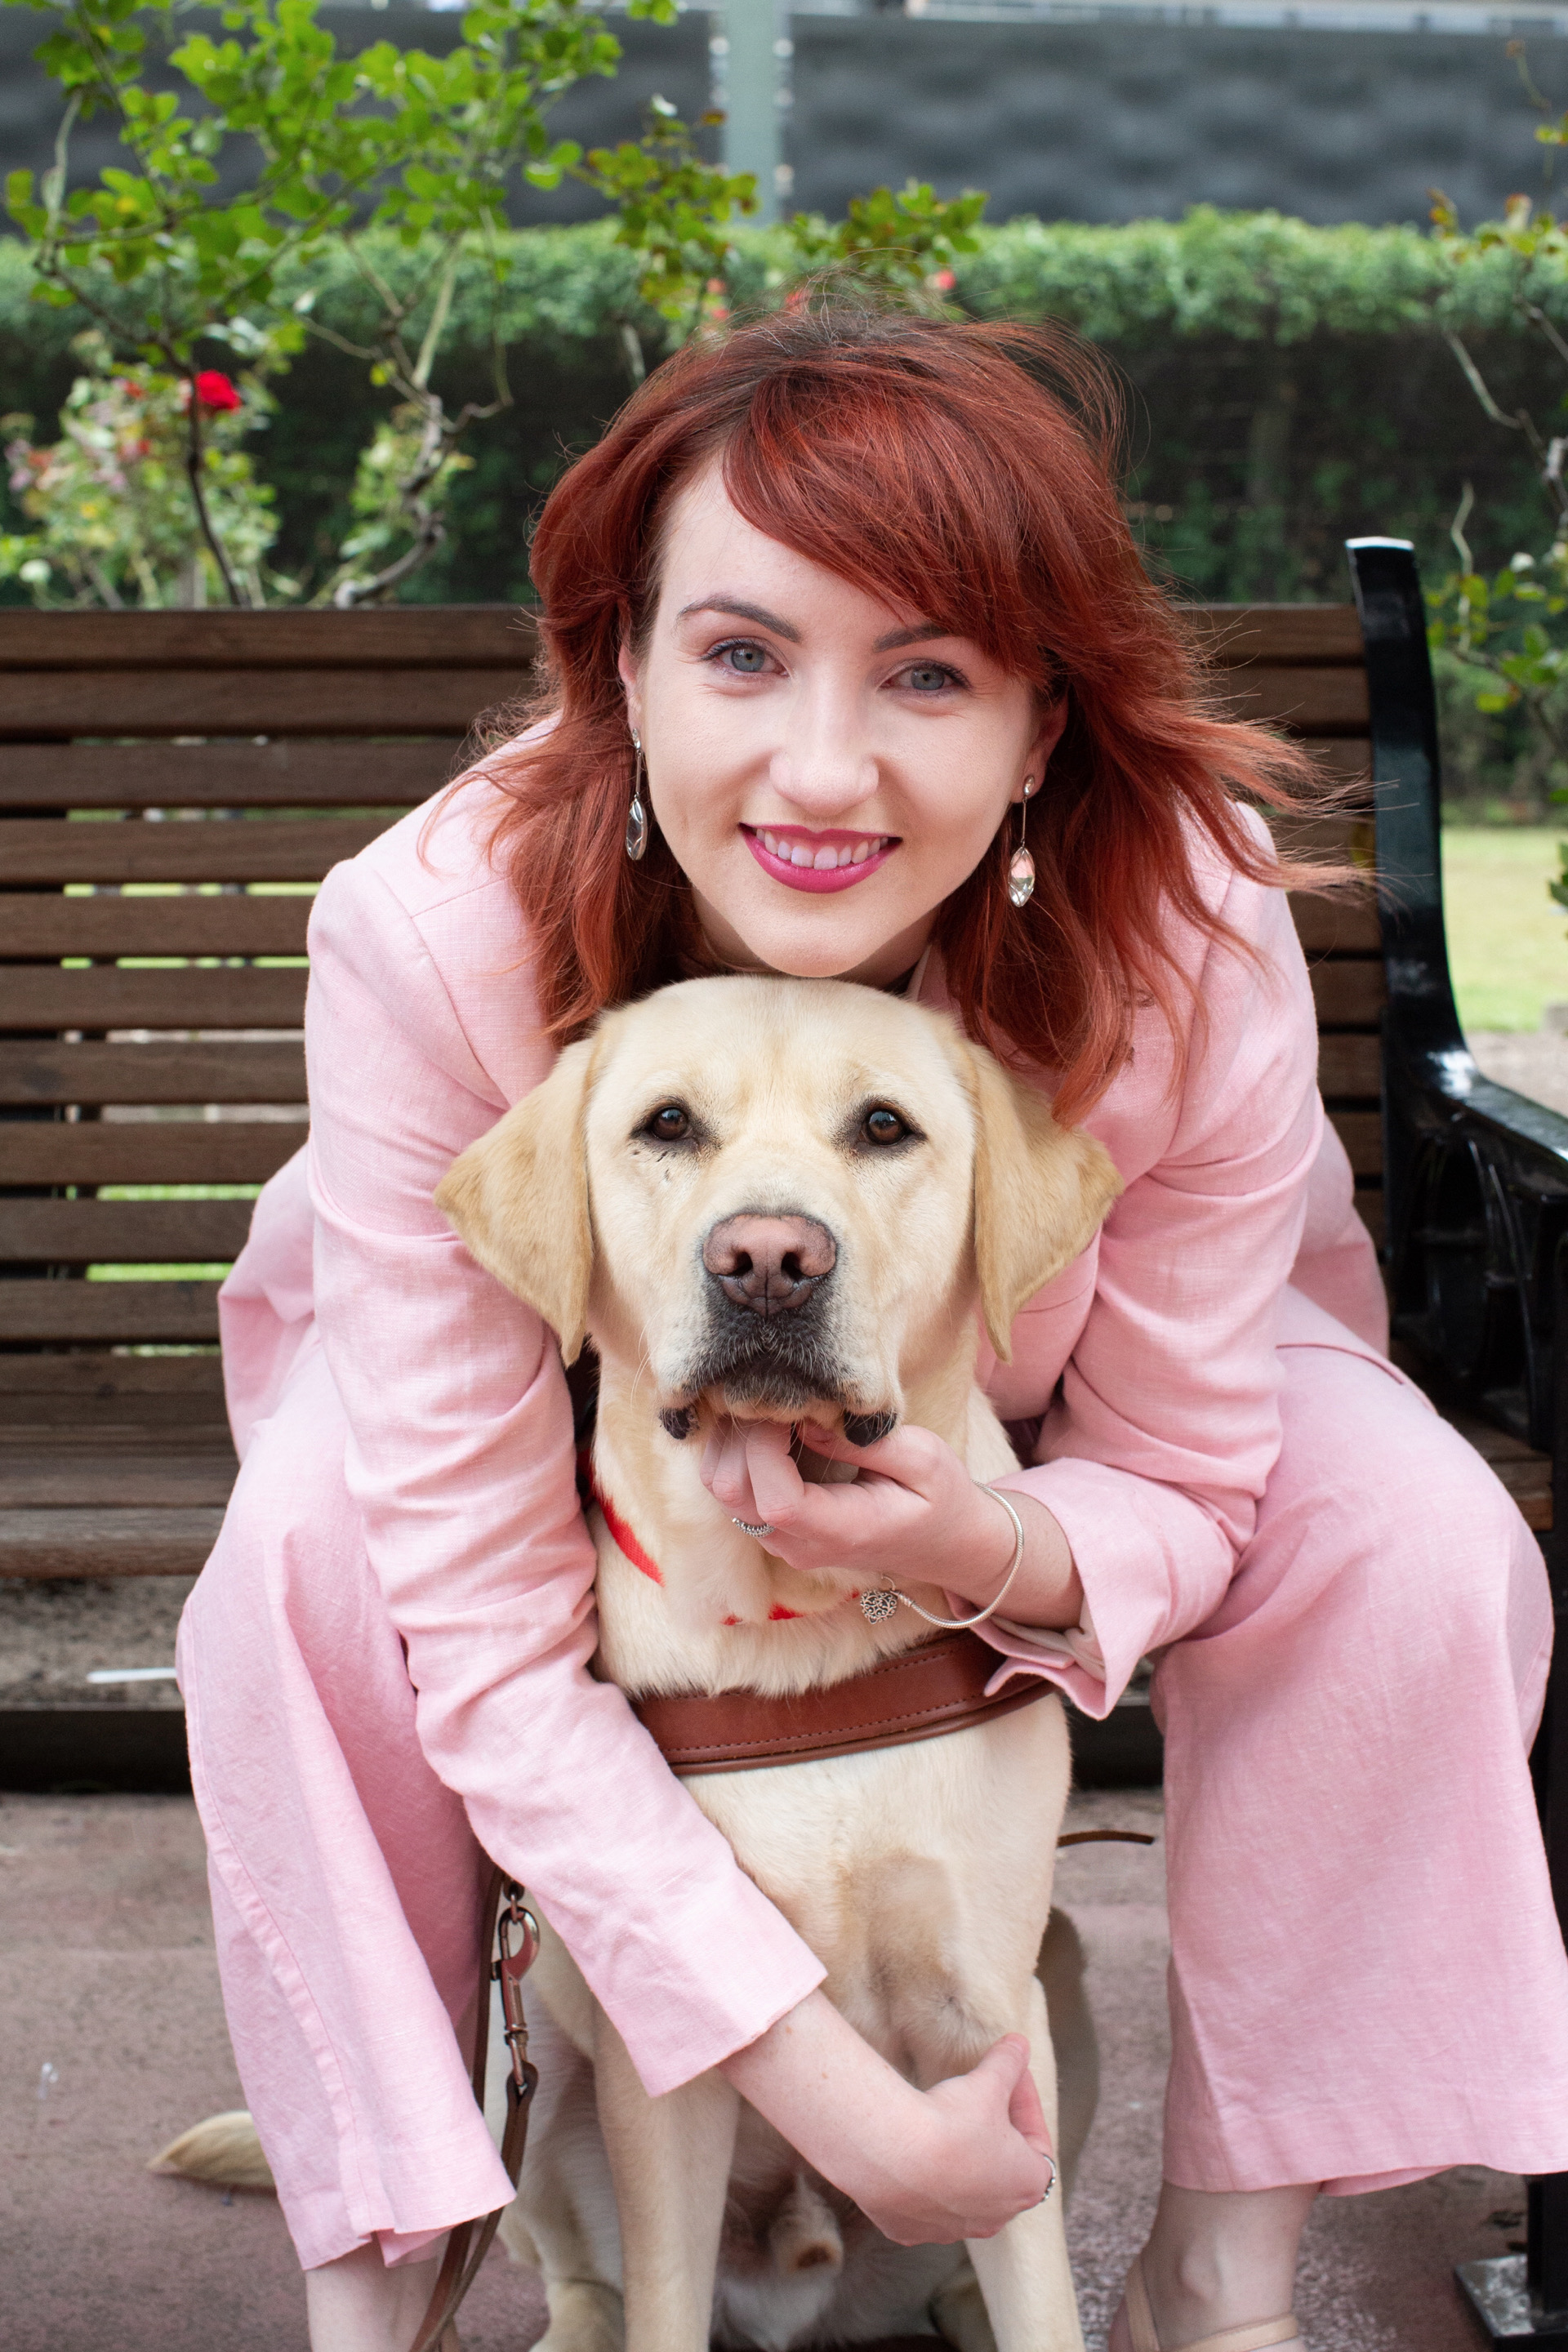 Ingrid wears a pink suit and sits on a bench. She leans to hug her dog Banner who is seated in front of her, facing the camera.